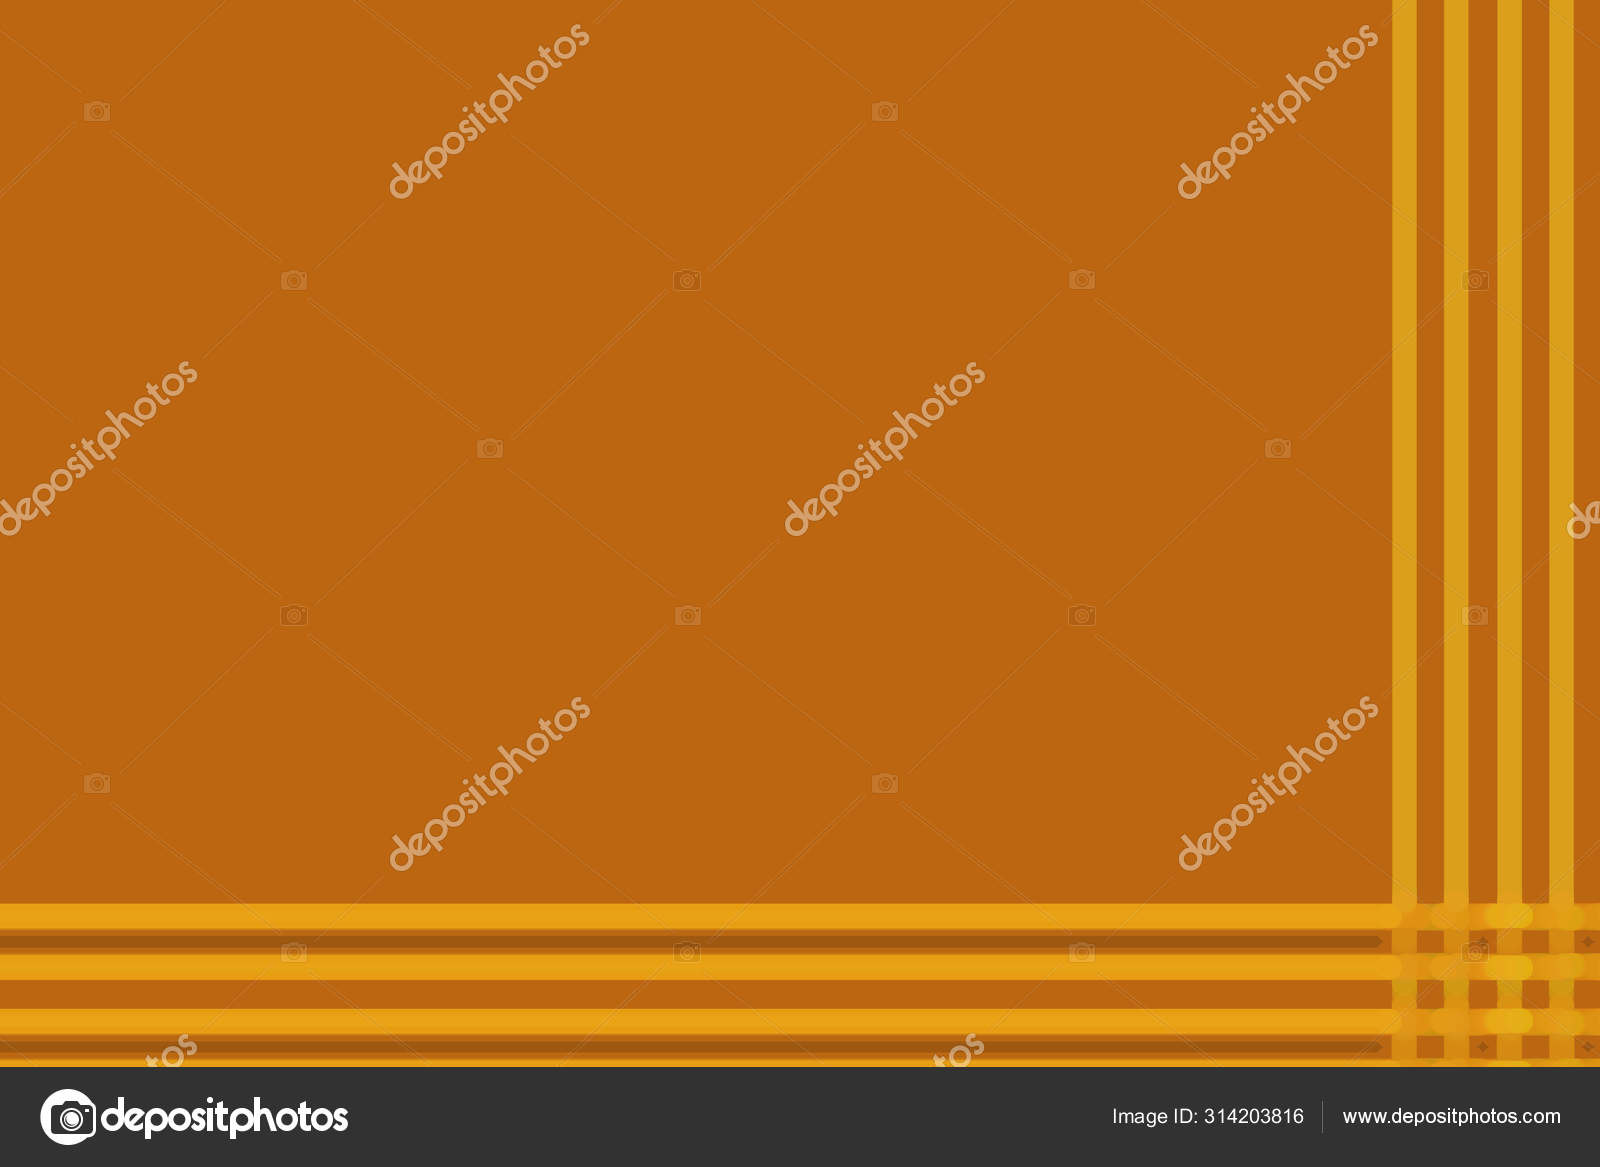 Abstract Background Wallpaper Brown Shades Stock Photo C Marymary89 Mail Ru 314203816